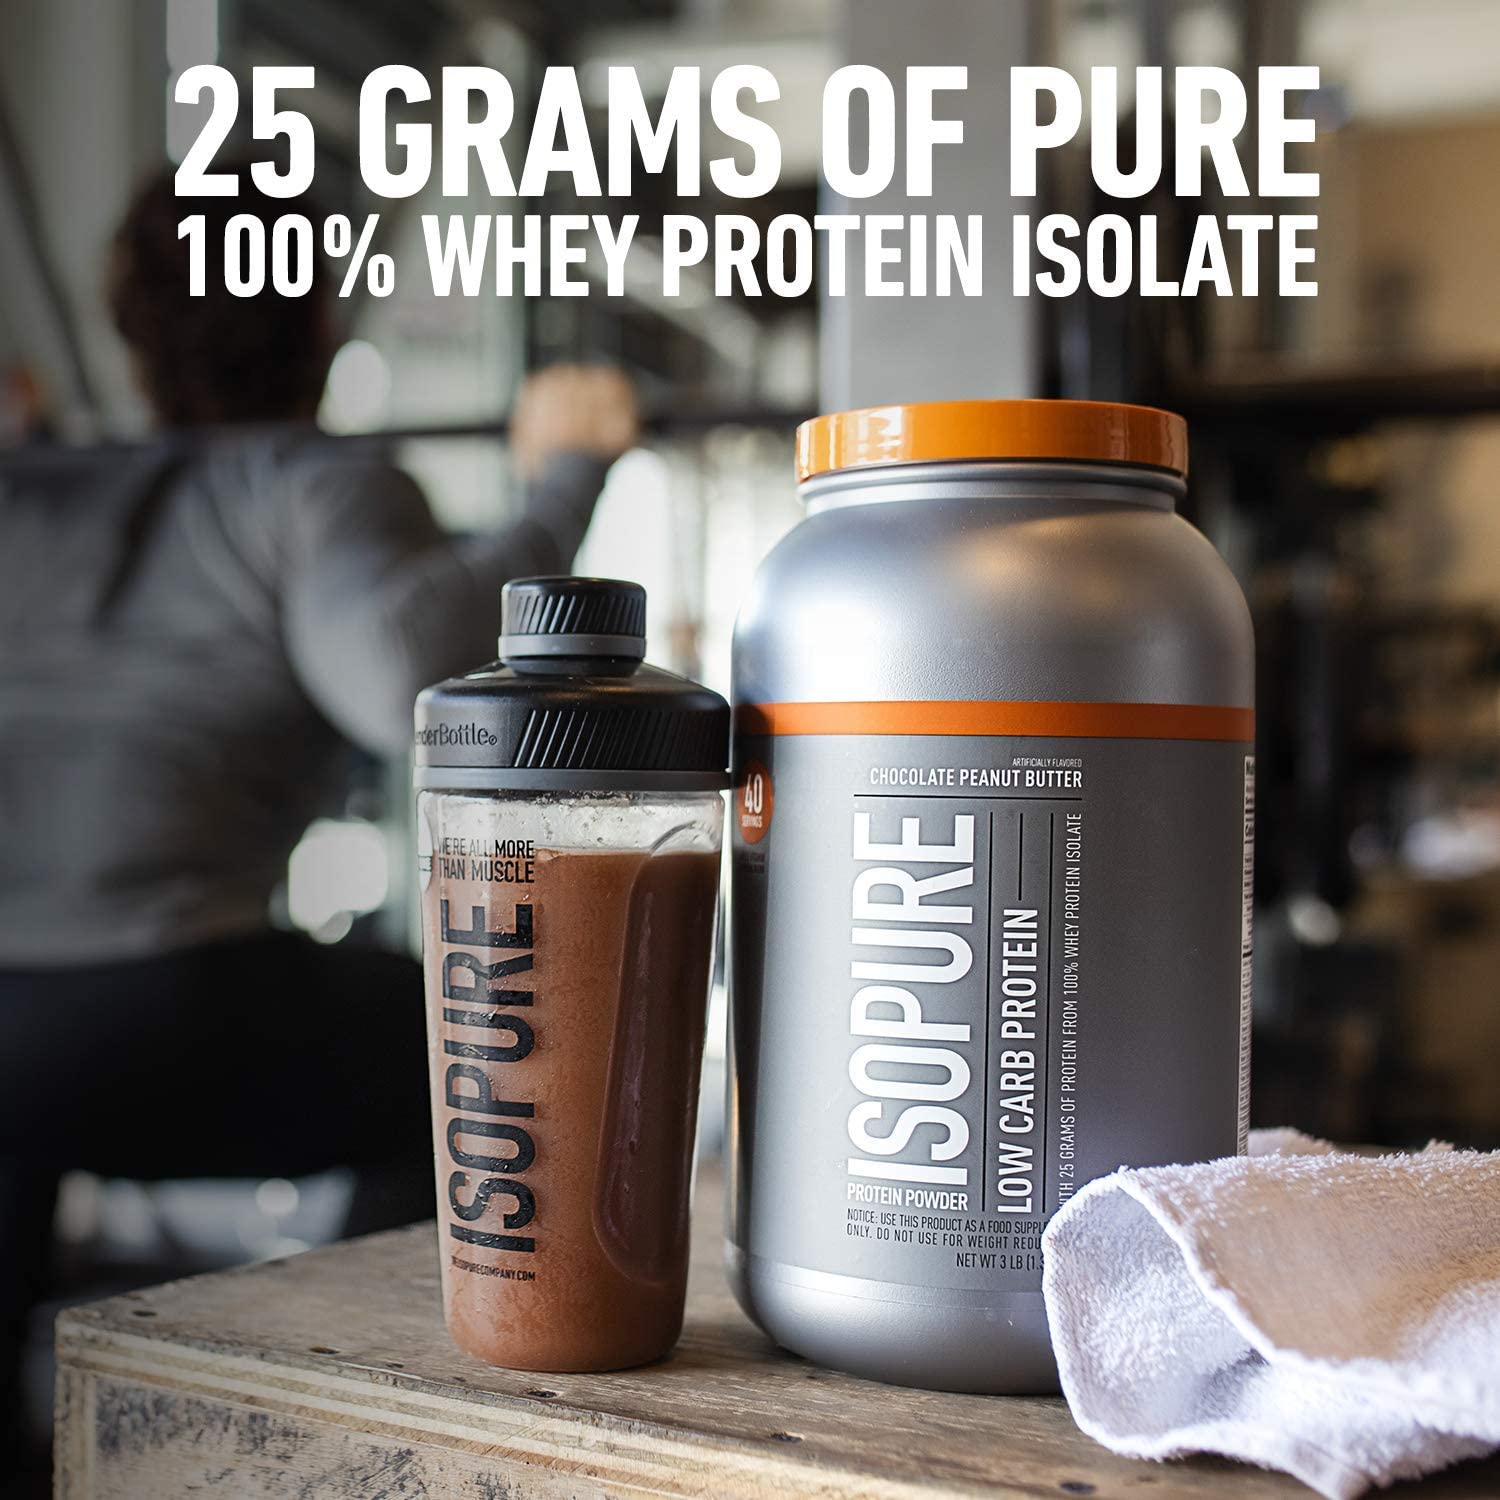 Isopure Low Carb, Vitamin C and Zinc for Immune Support, 25g Protein, Keto Friendly Protein Powder, 100% Whey Protein Isolate, Flavor: Dutch Chocolate, 3 Pounds (Packaging May Vary) (Copy) | NutriPro